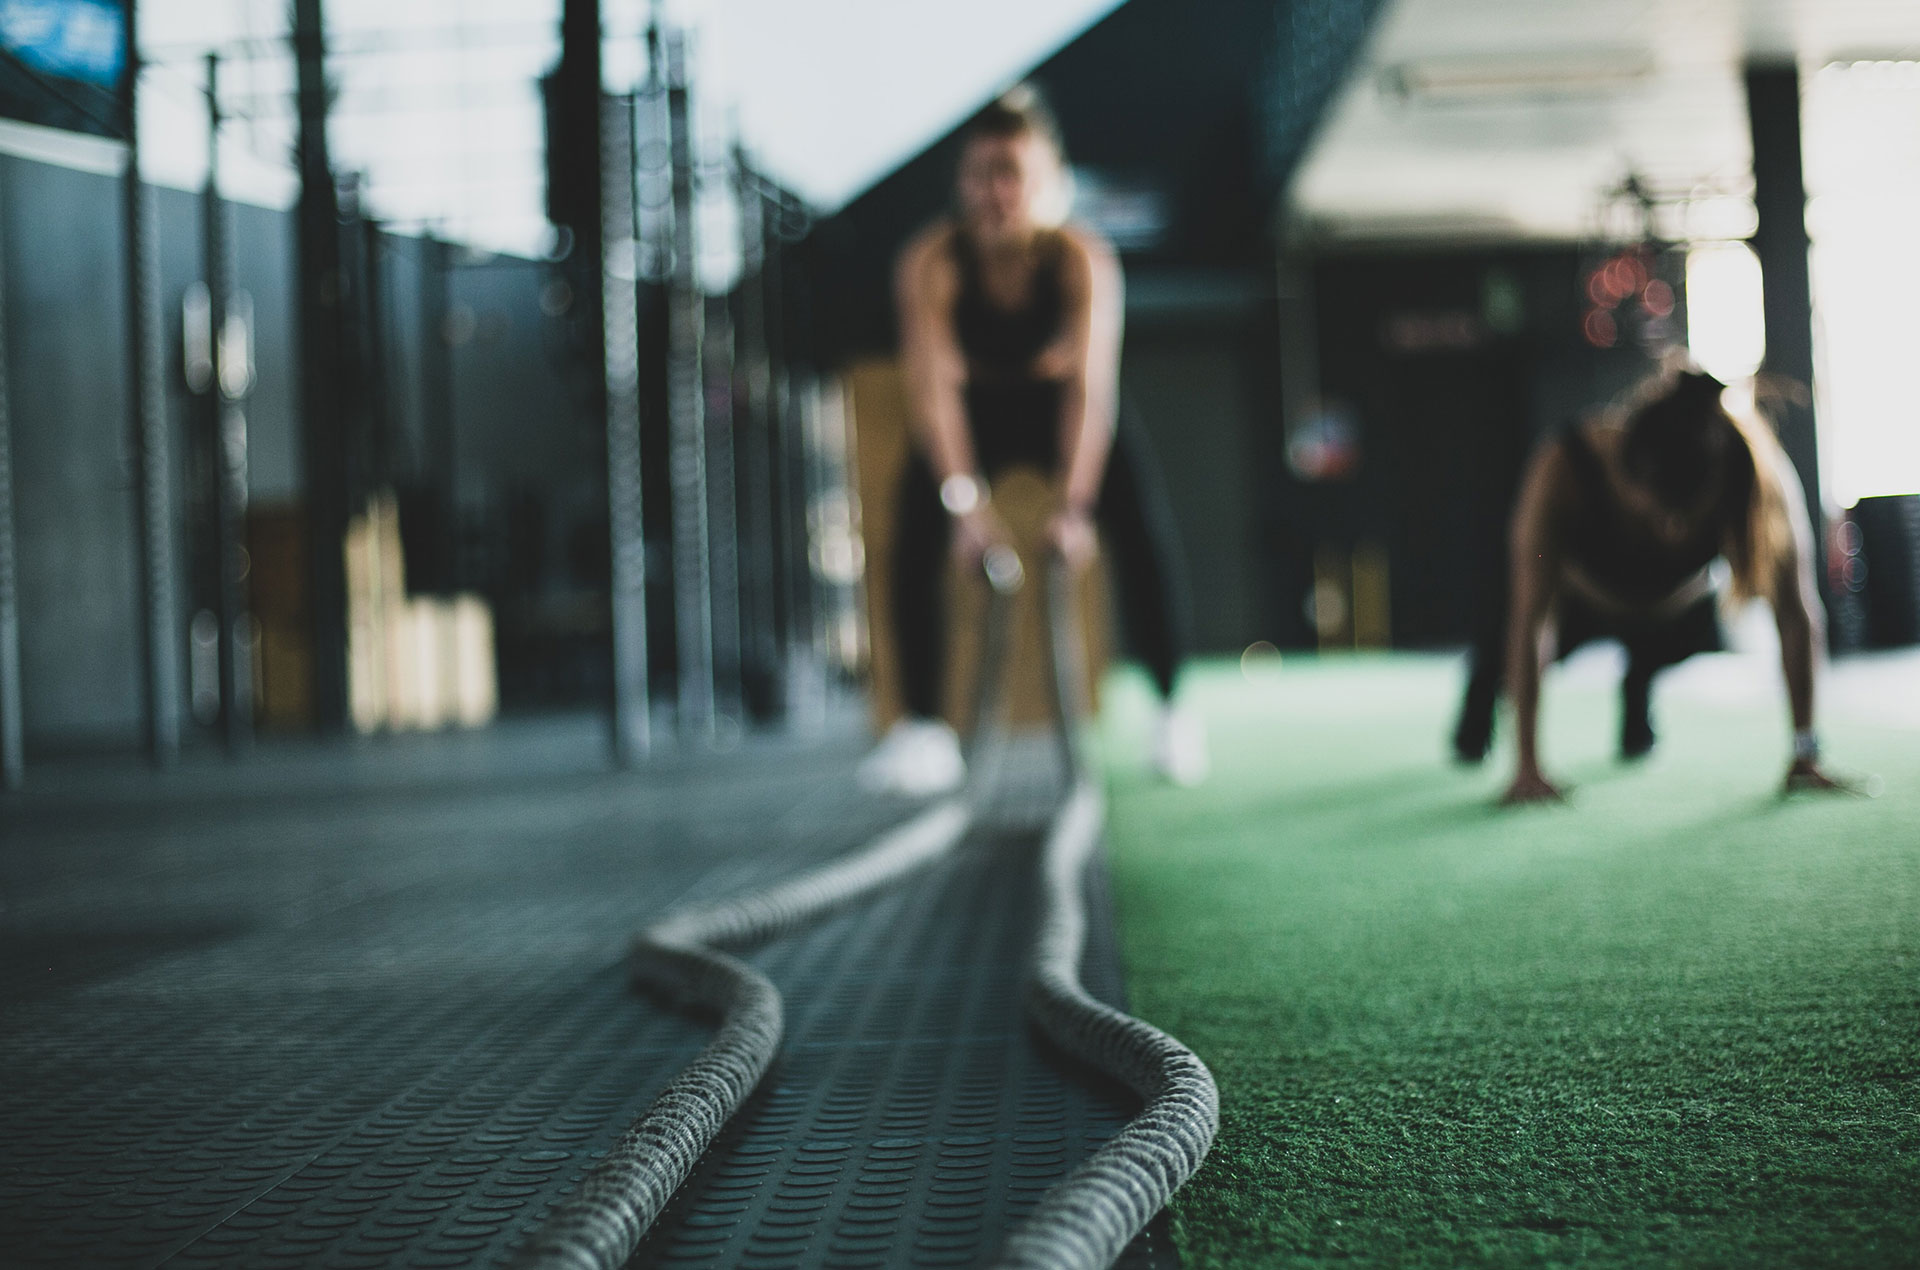 To CrossFit or Not to CrossFit